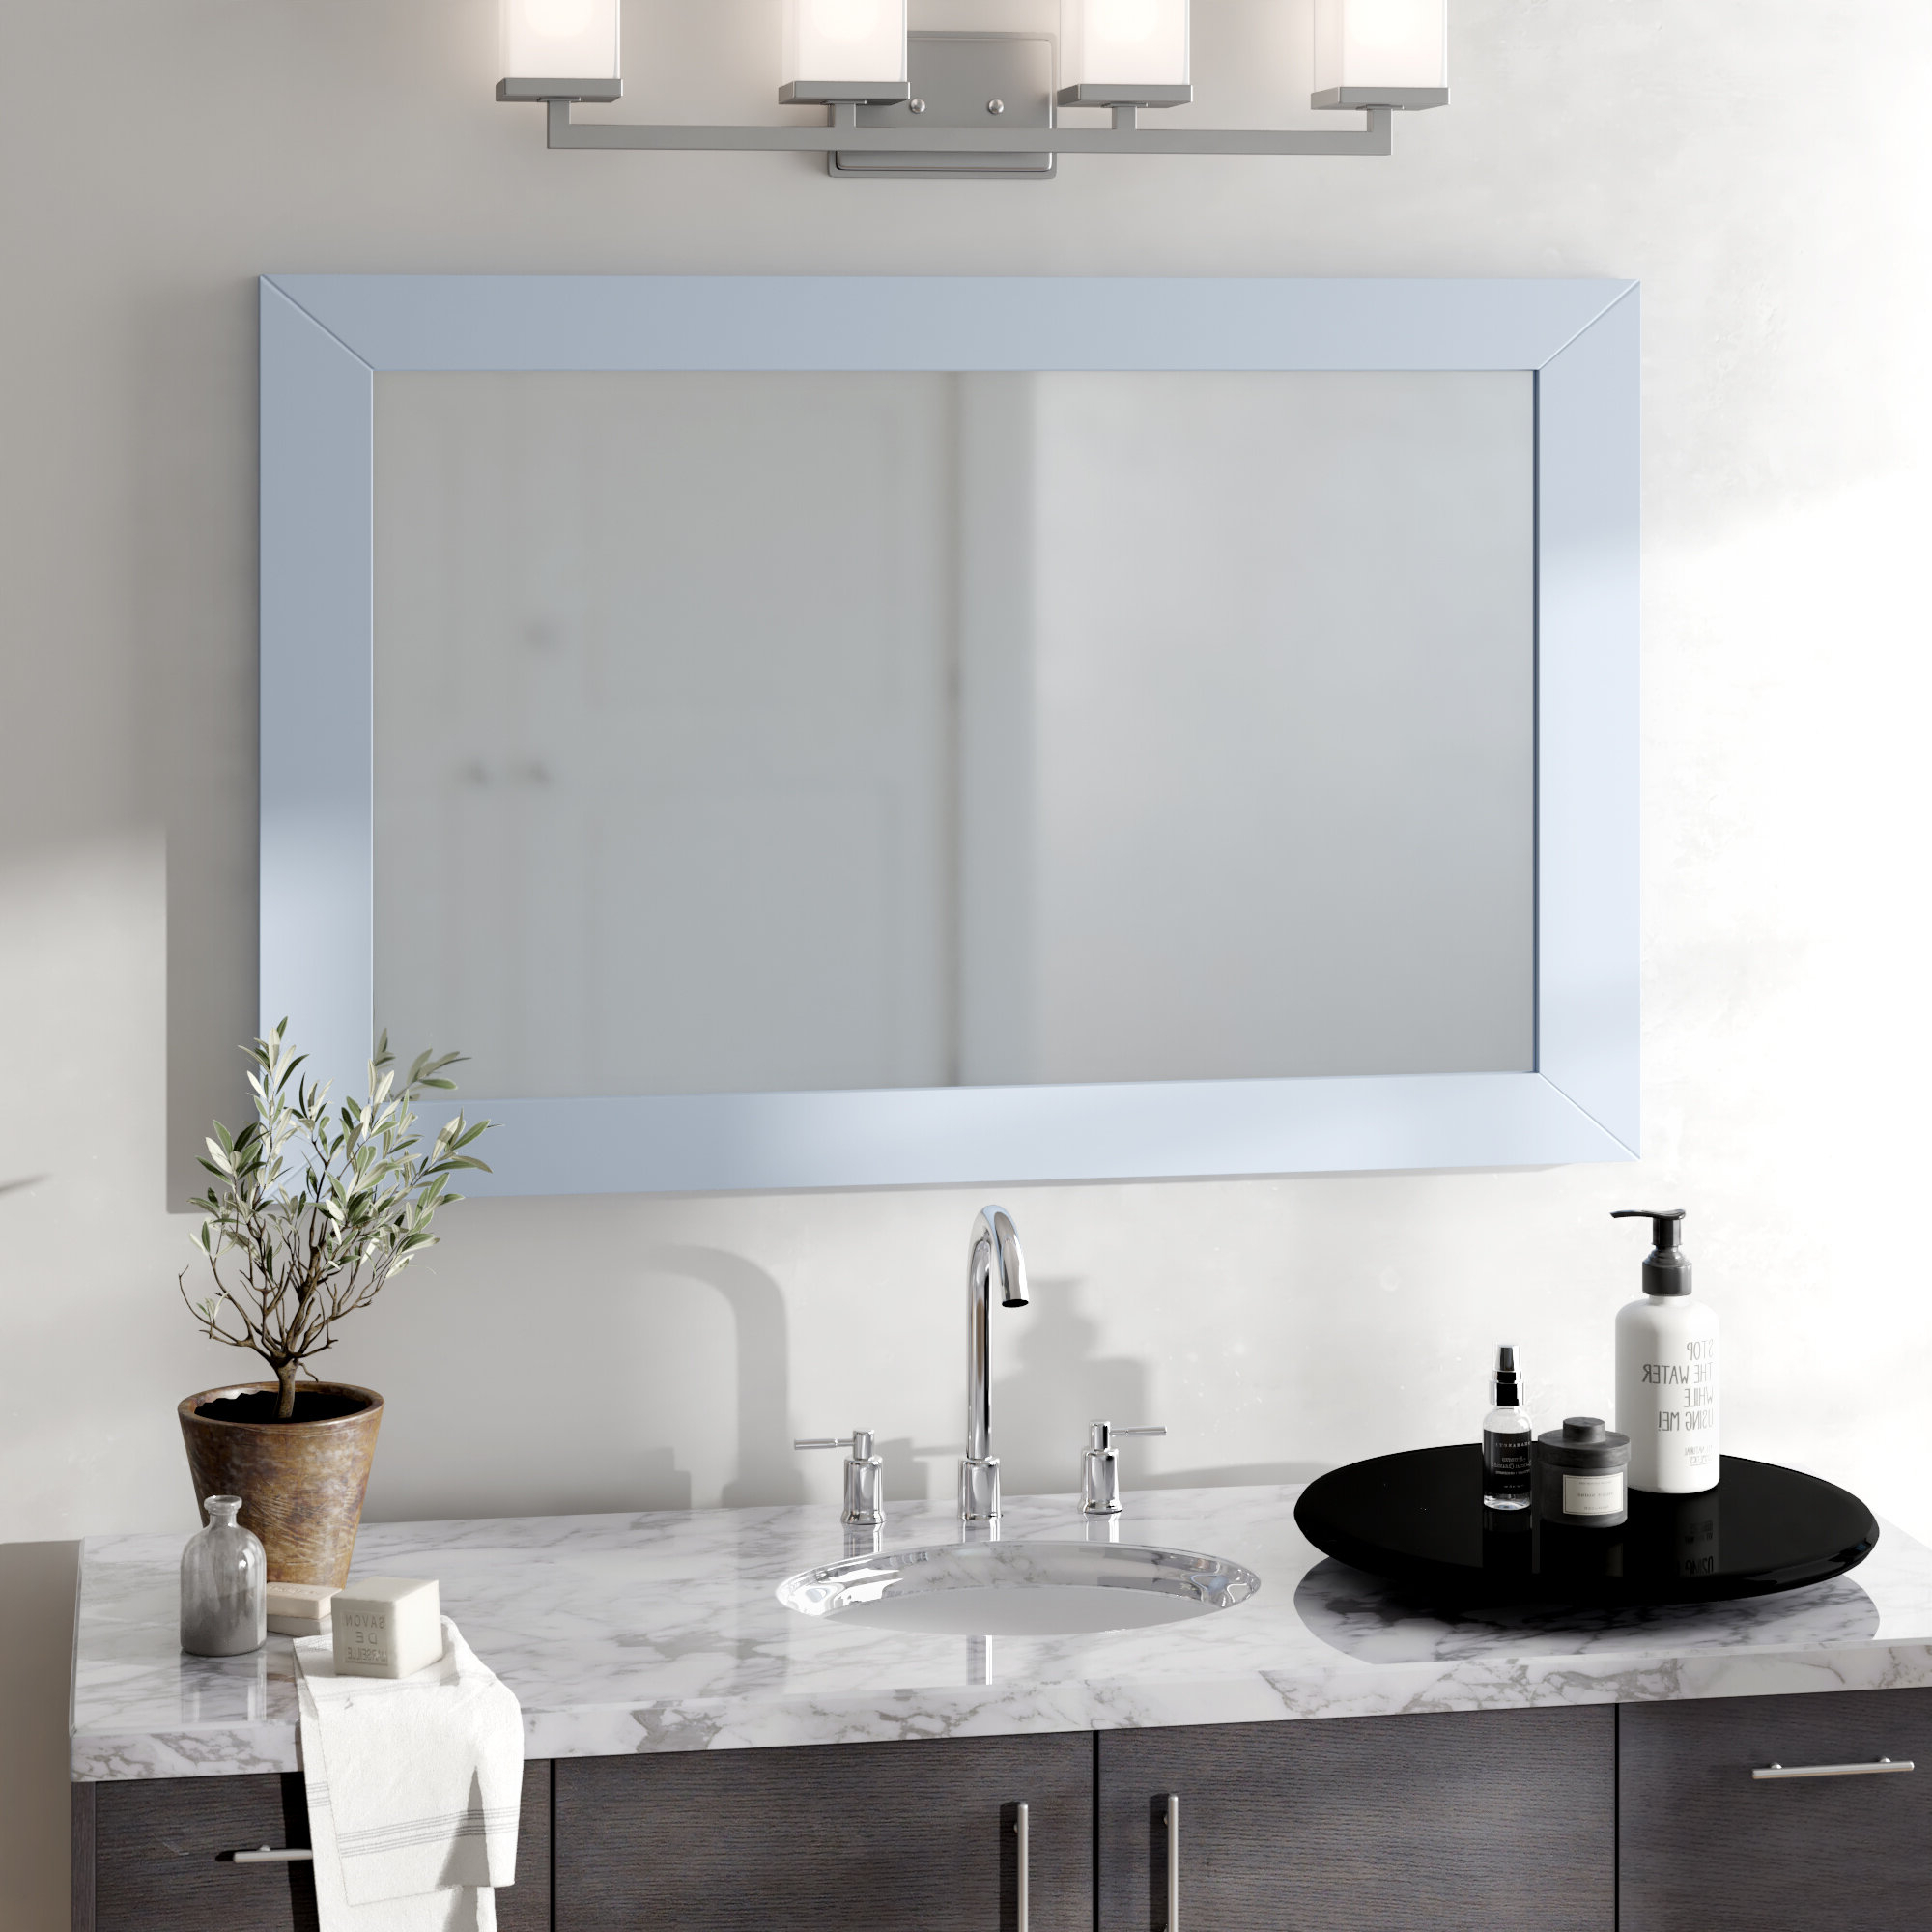 Piccirillo Rectangle Framed Bathroom Wall Mirror Intended For Favorite Frame Bathroom Wall Mirrors (View 2 of 20)